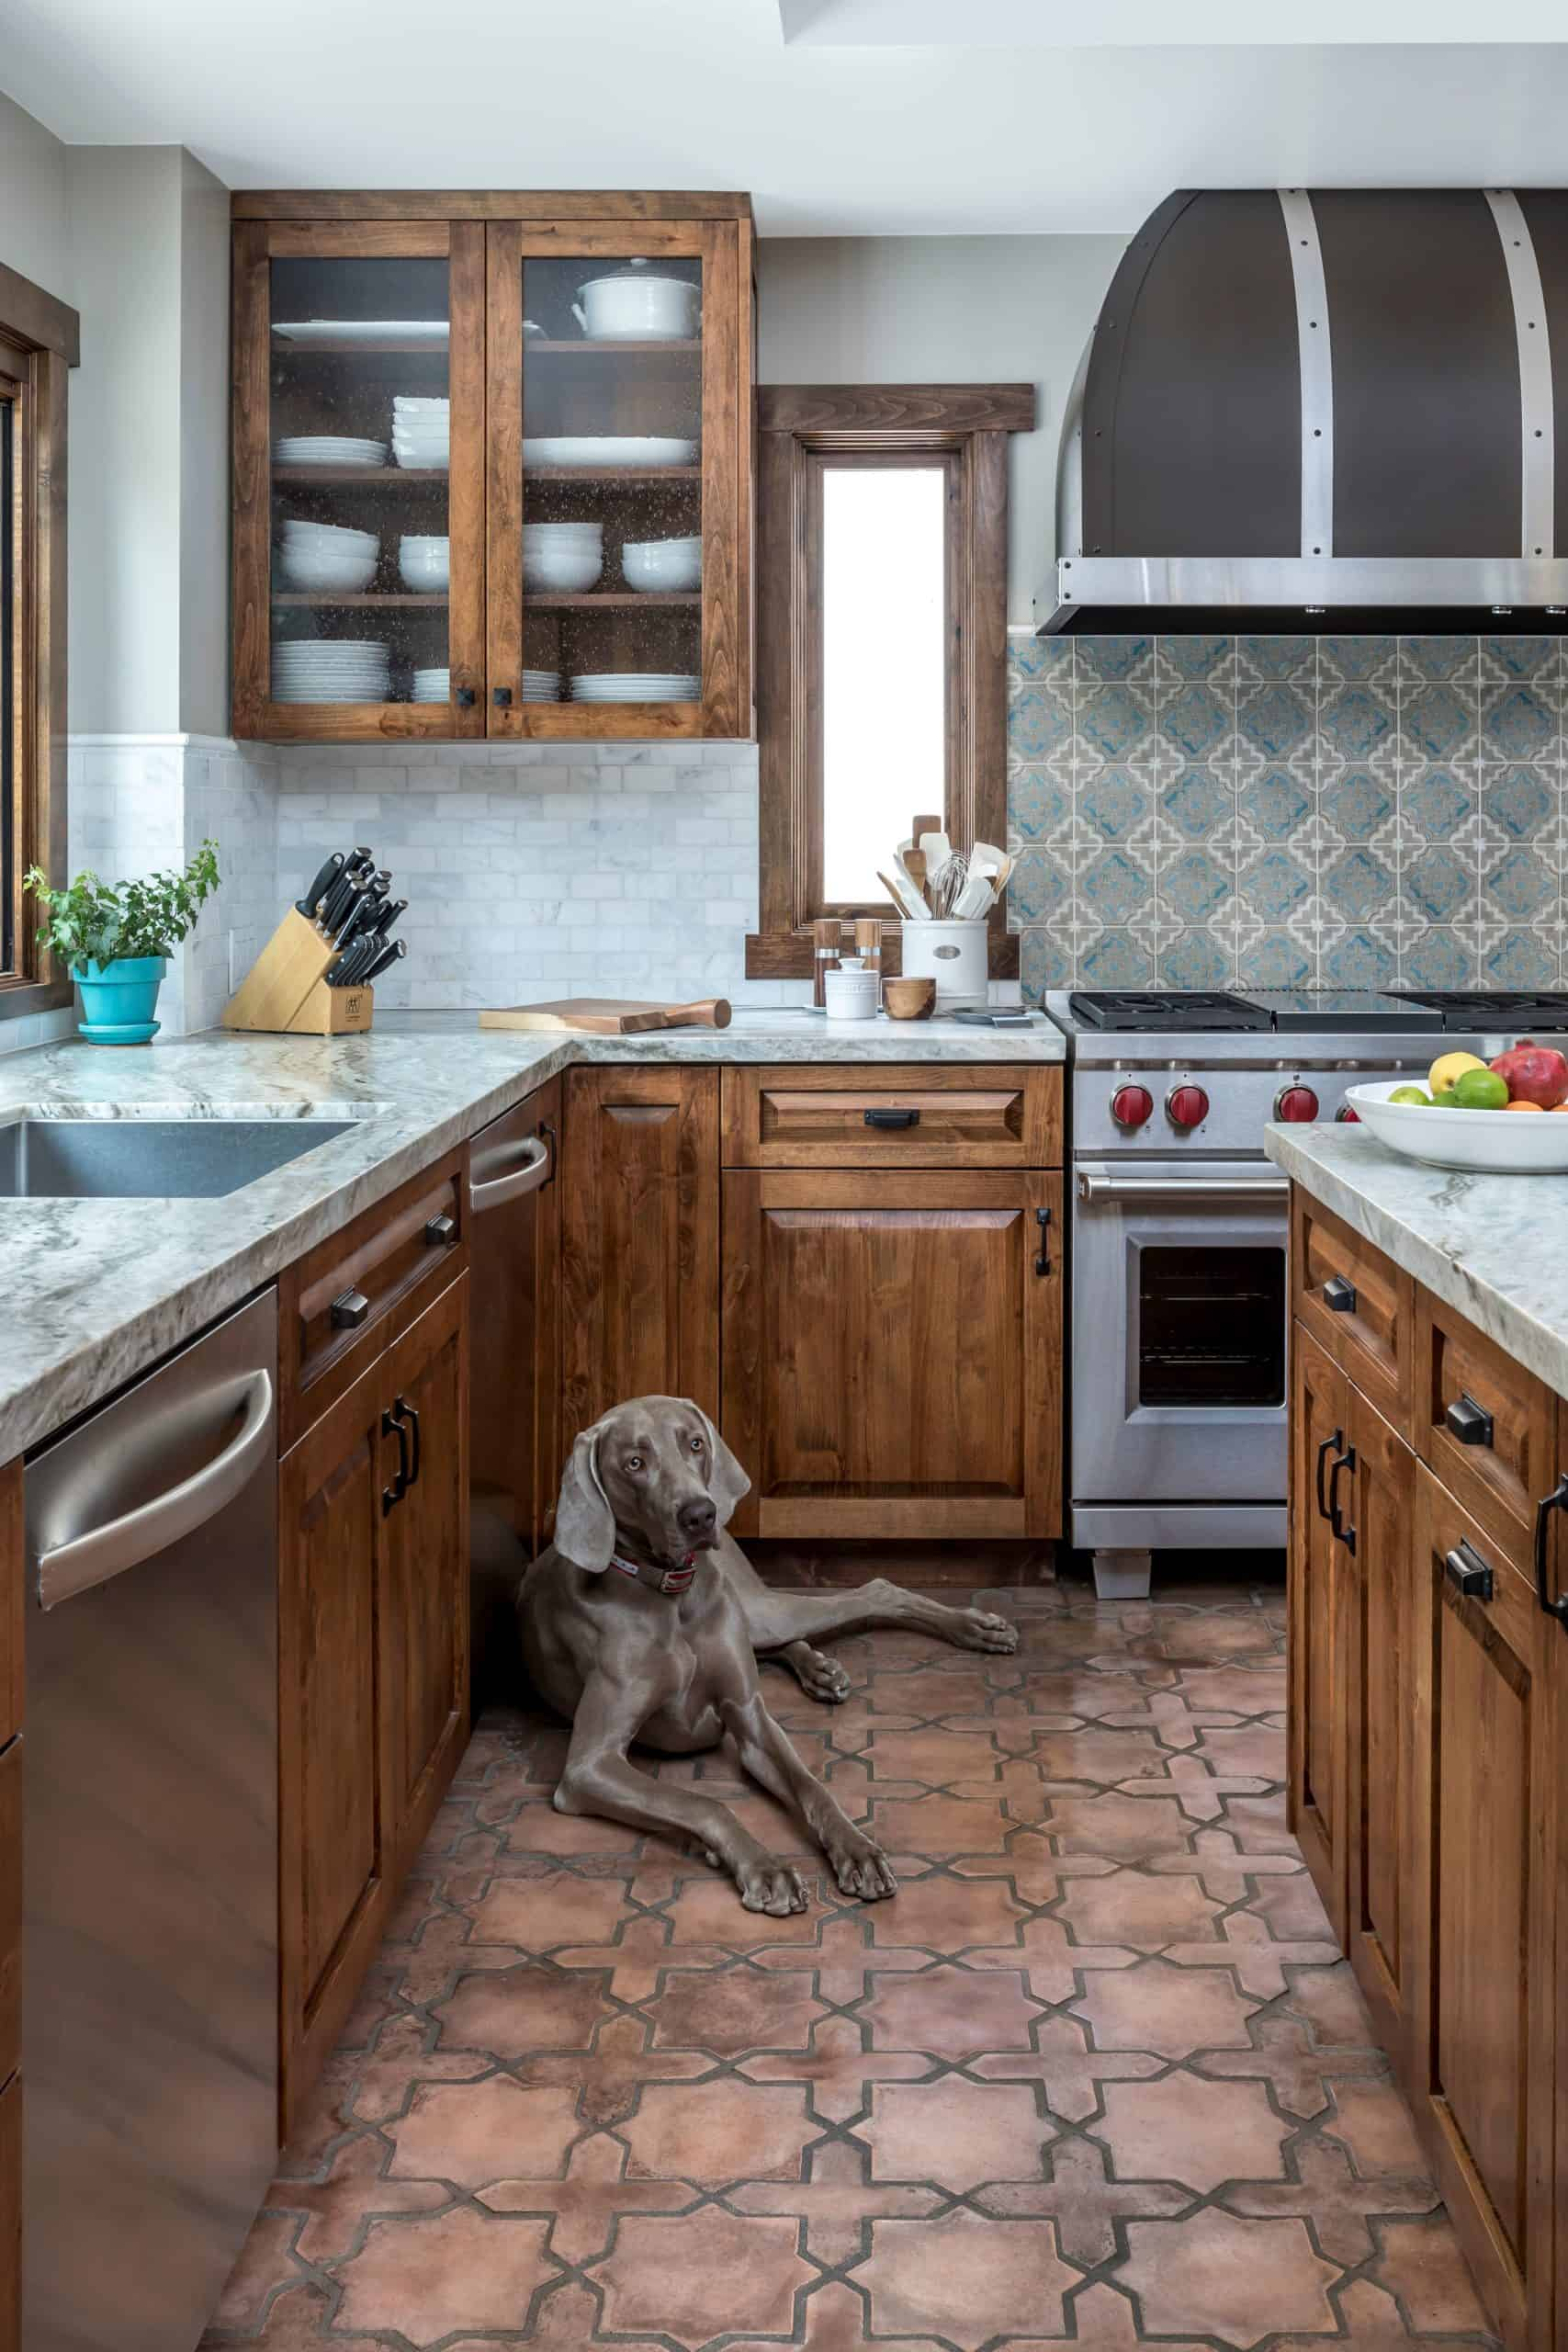 Modern Rustic kitchen with altalena pattern in azul